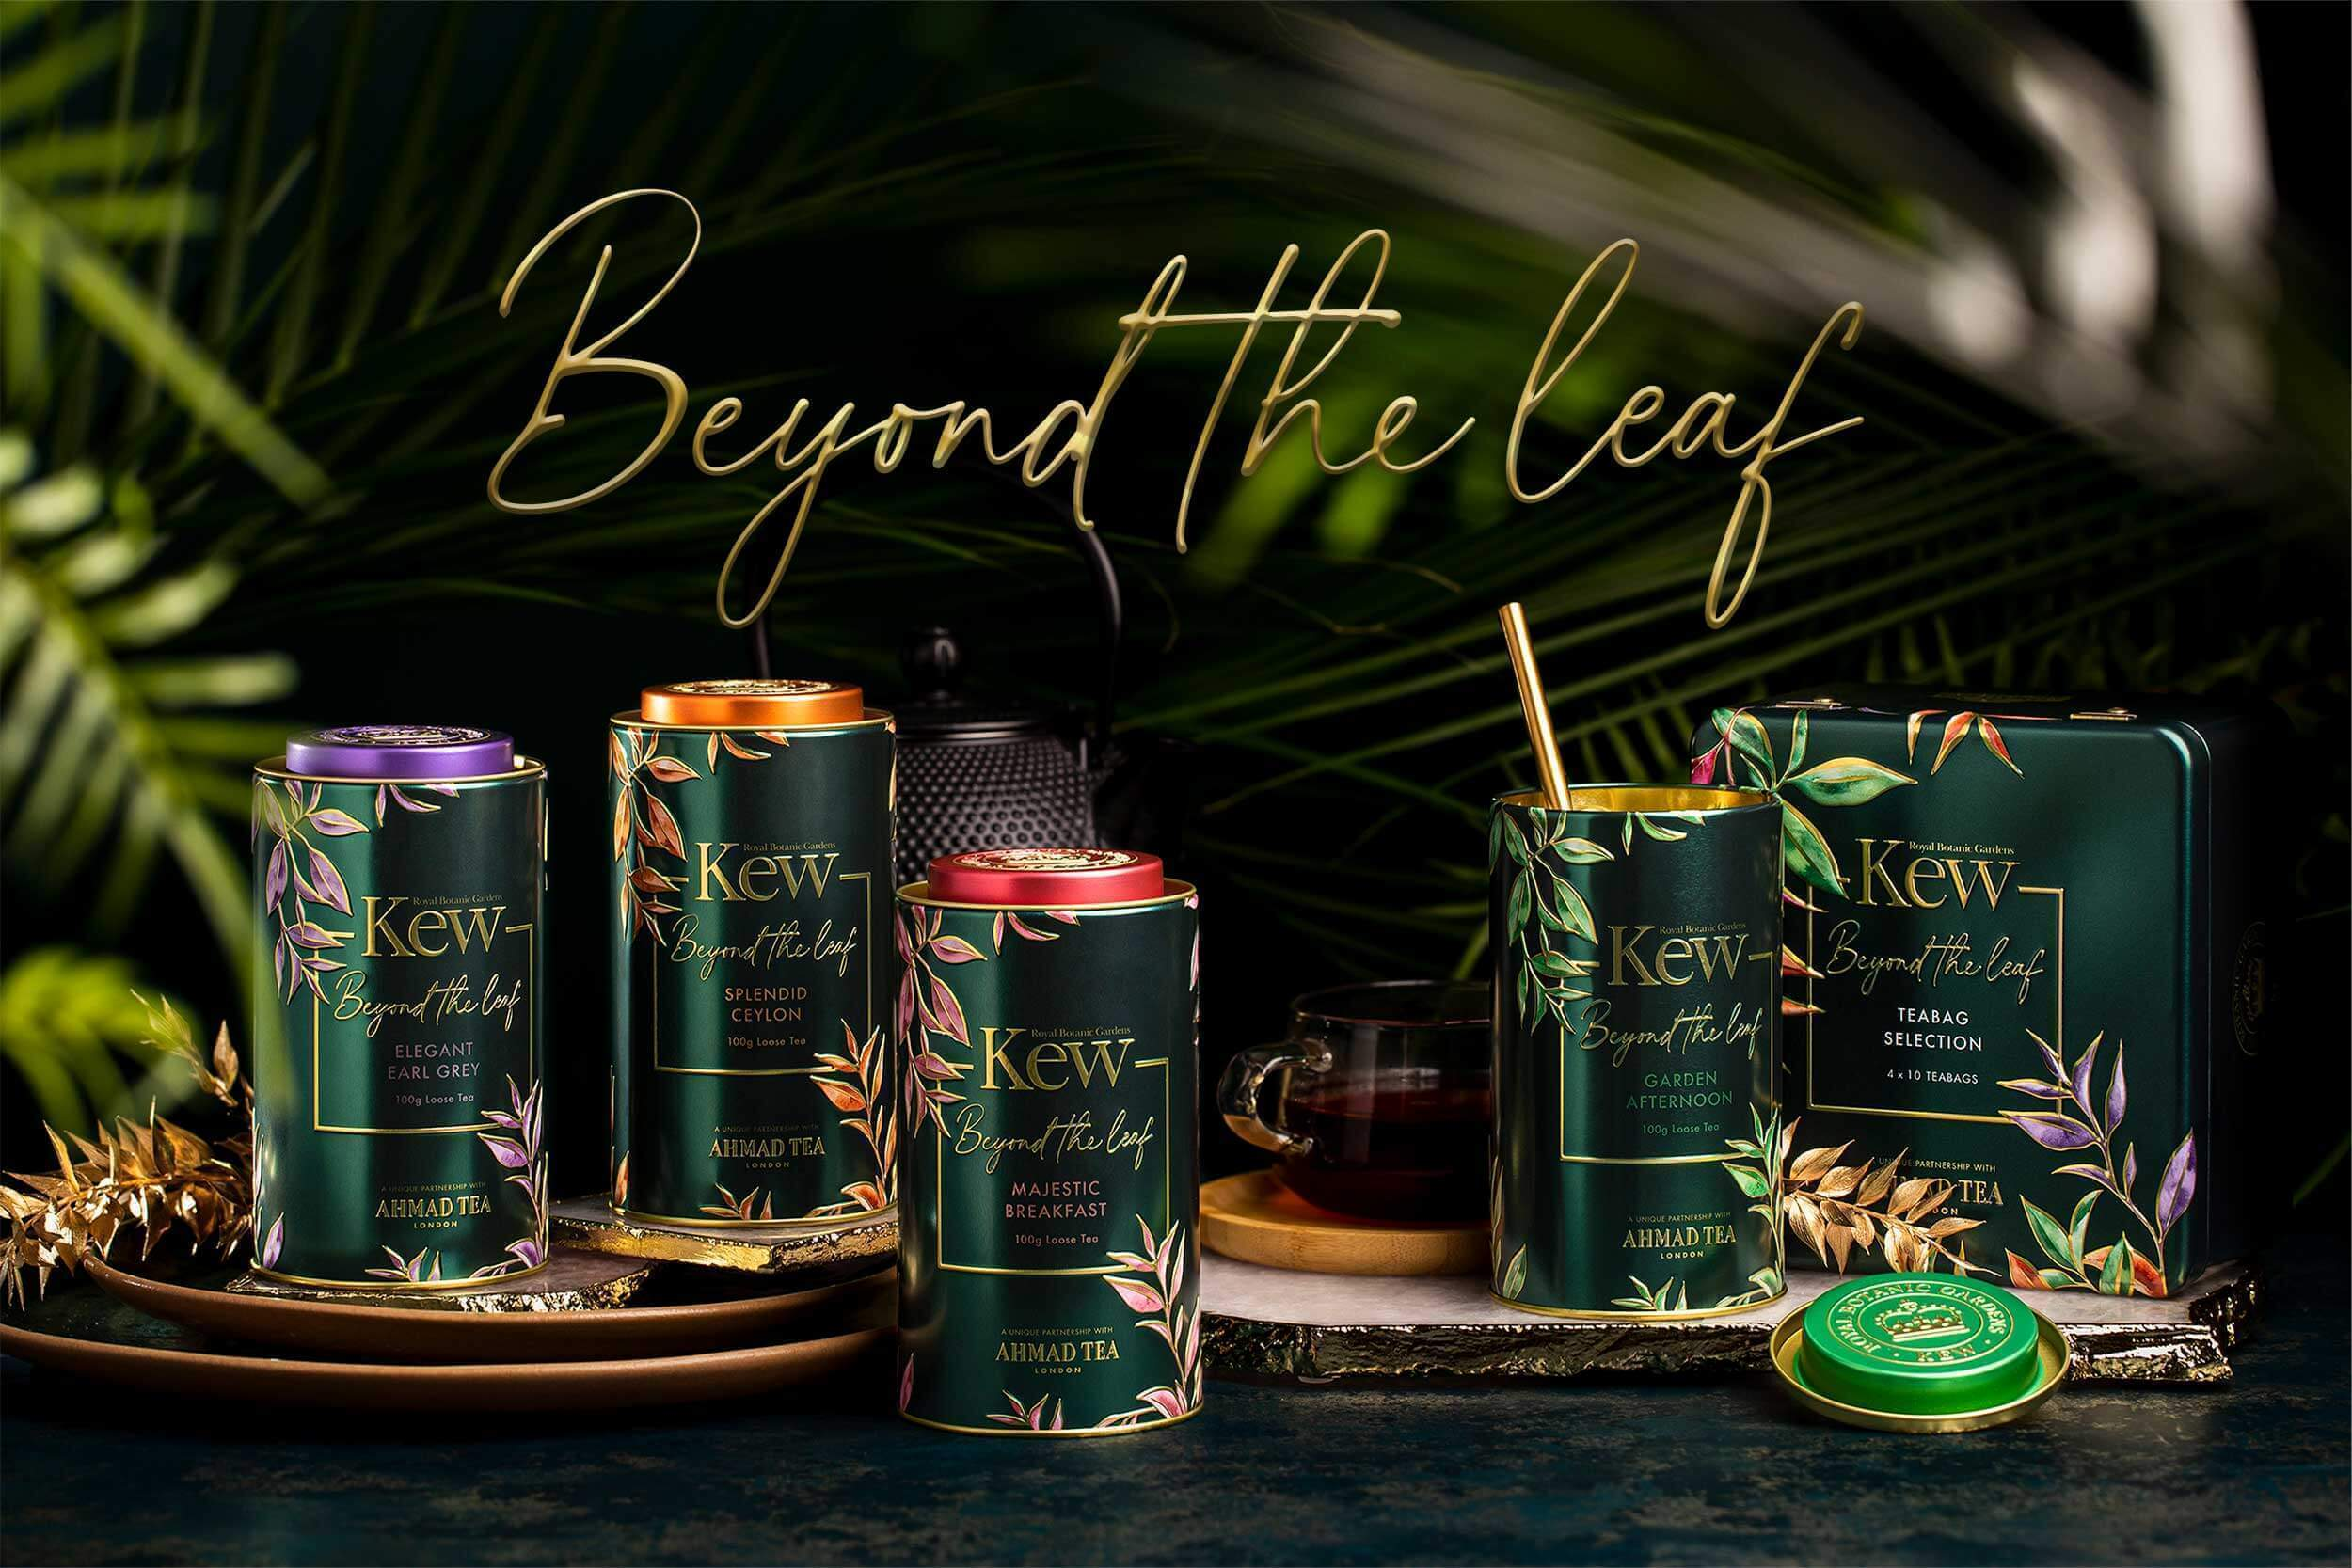 Buy our Beyond the leaf collection